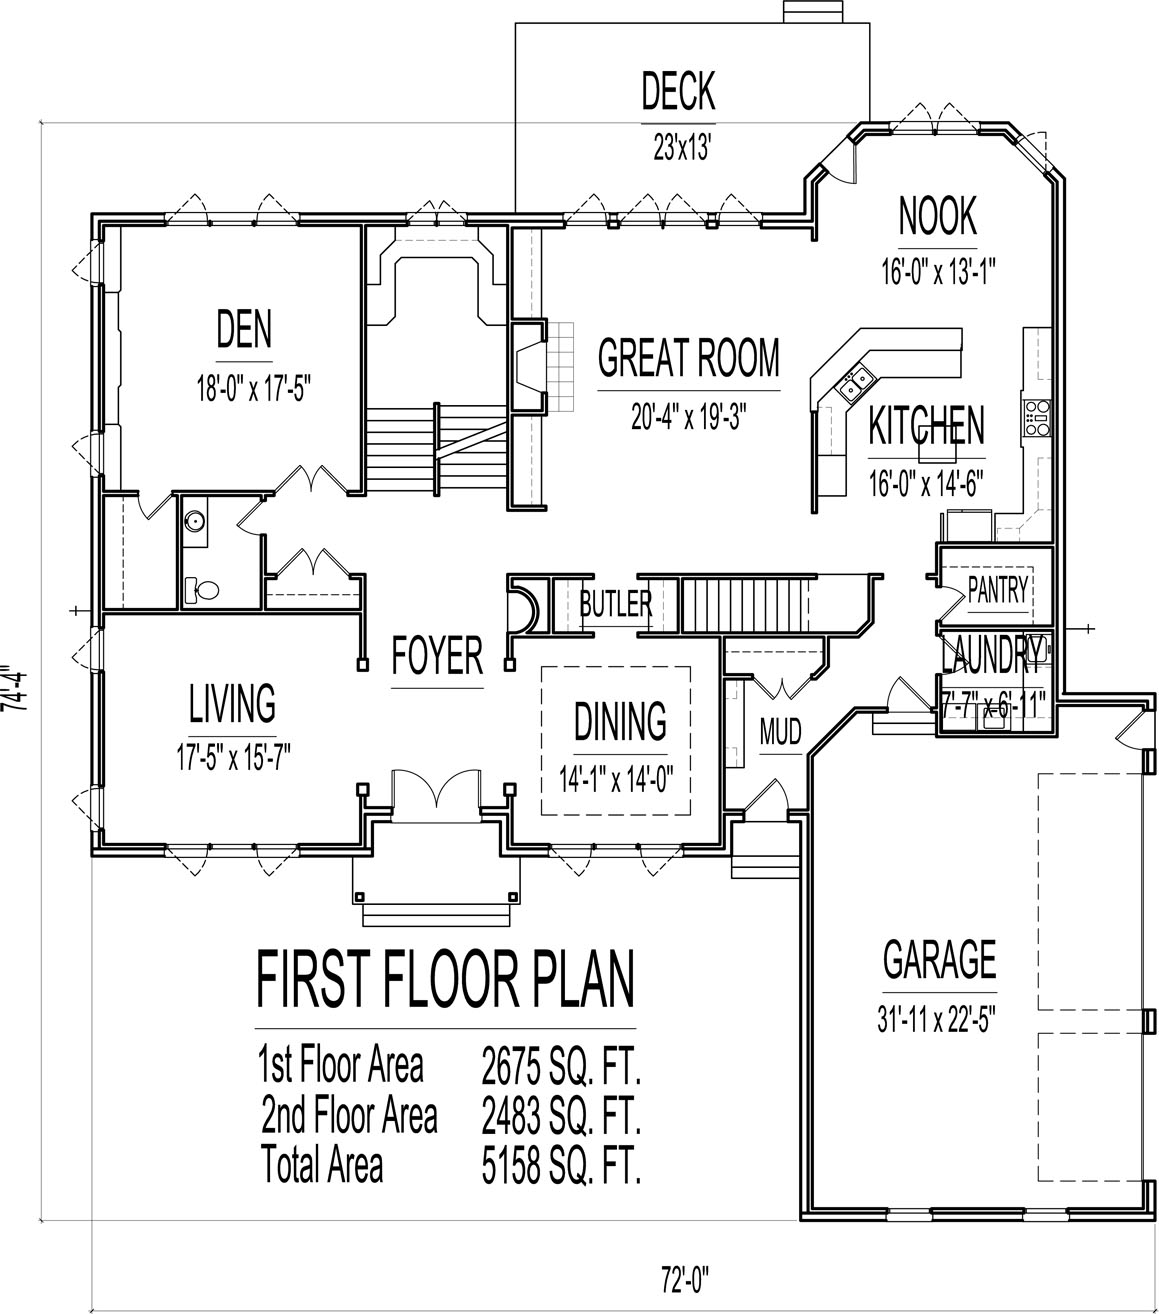 5 bedroom 2 story 5000 sq ft house floor plans stone and brick chicago peoria springfield